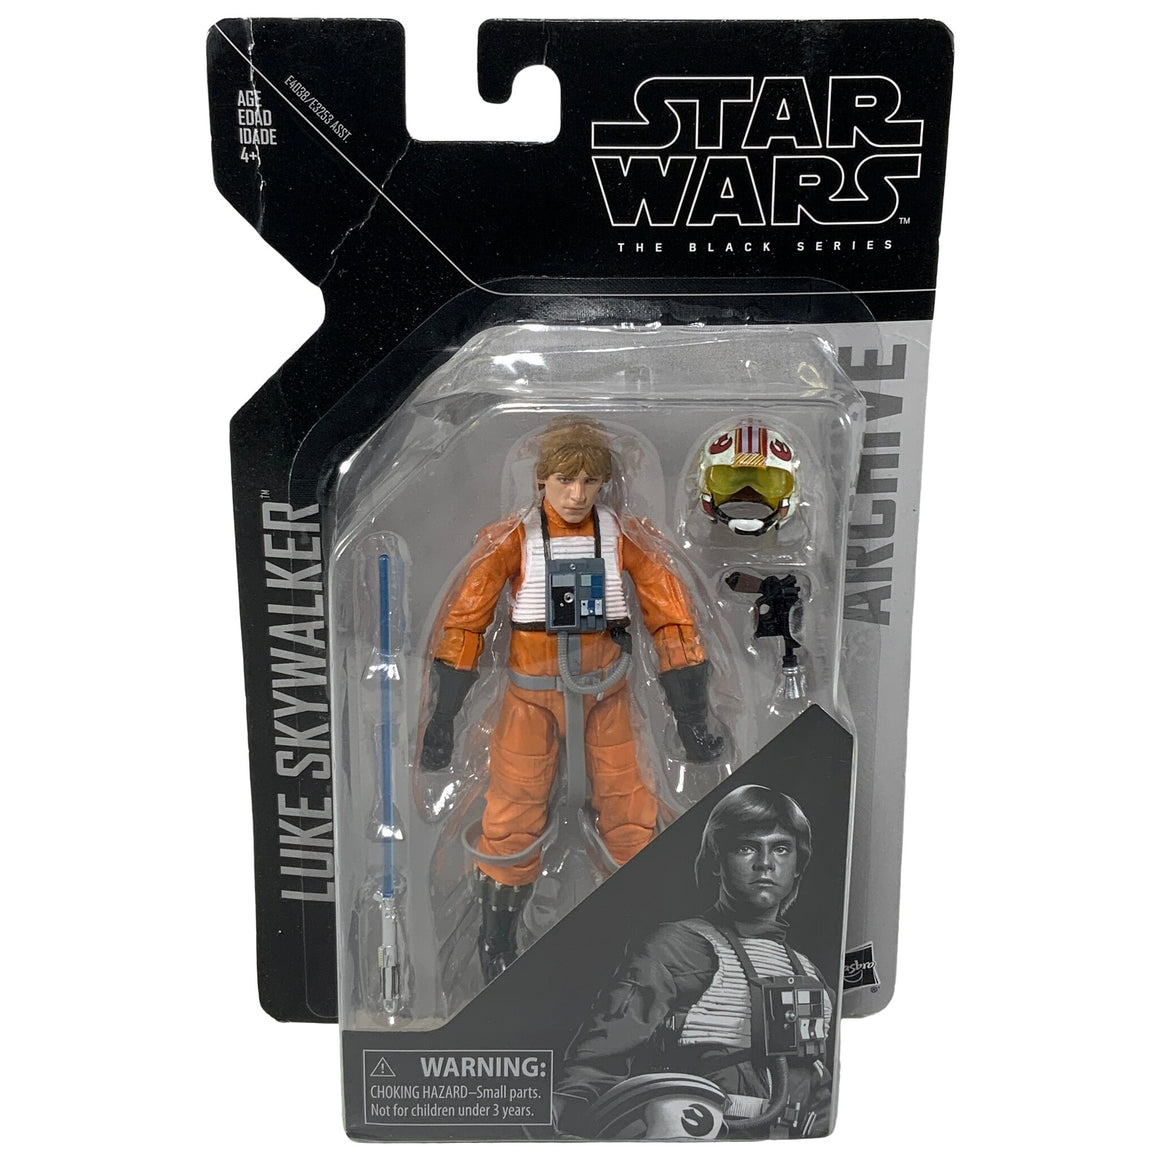 Star Wars The Black Series - Luke Skywalker